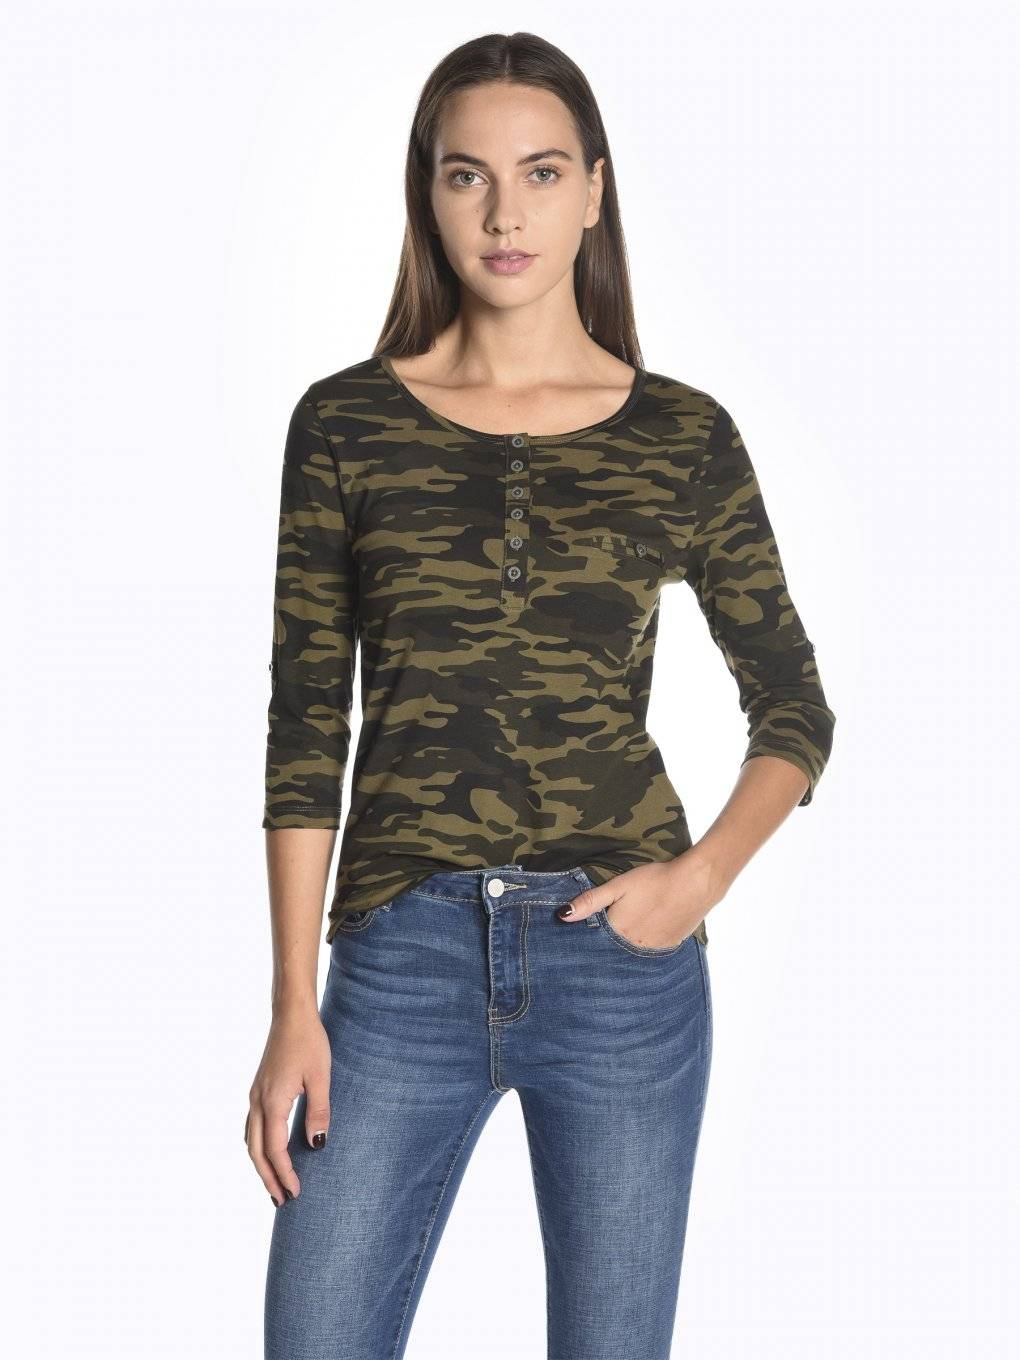 Camo print long sleeve t-shirt with buttons